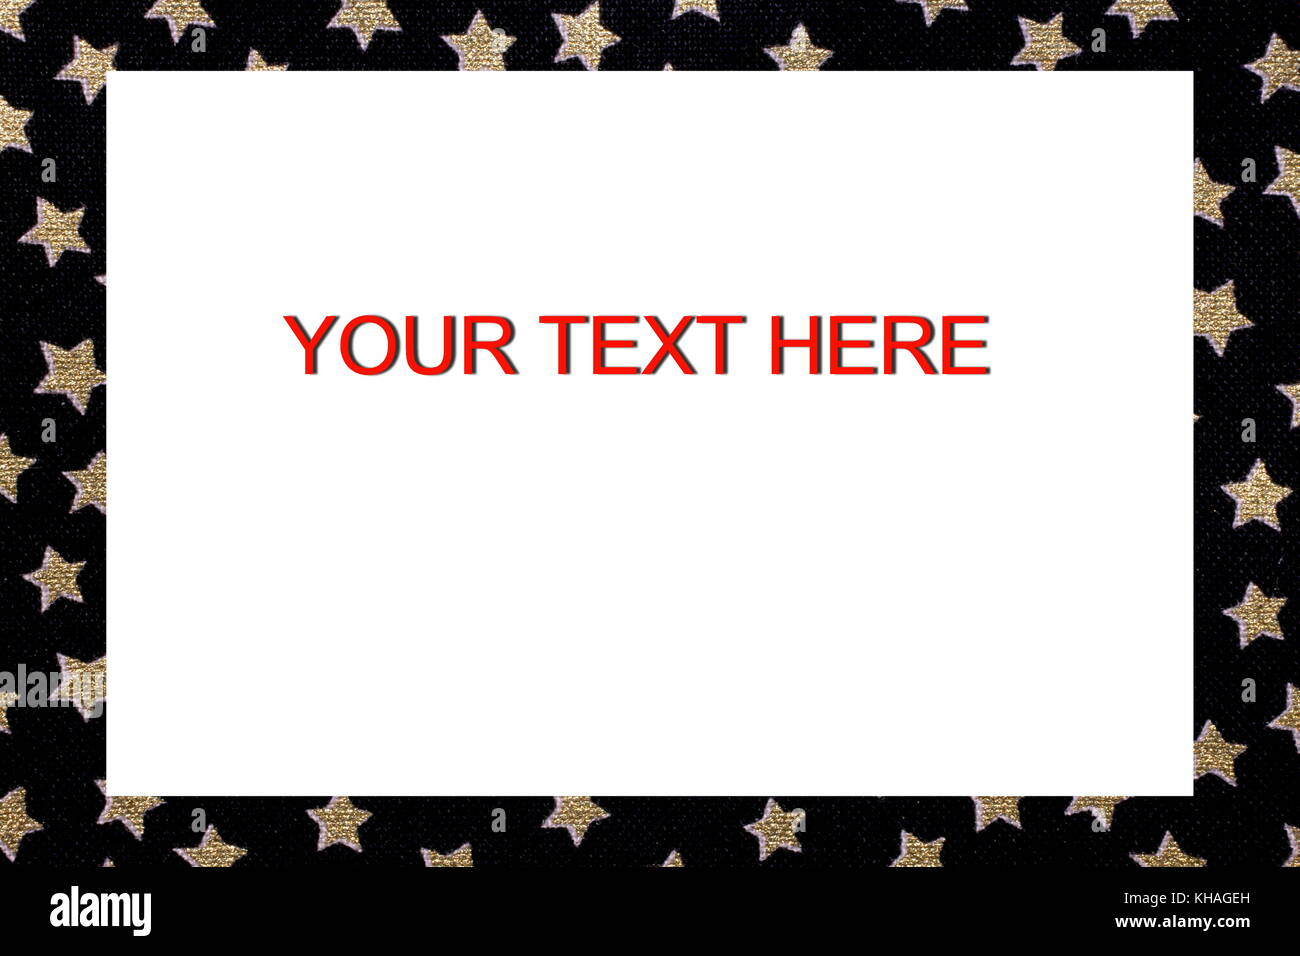 Border Frame With Stellar Designs And Text To Write A Custom Message